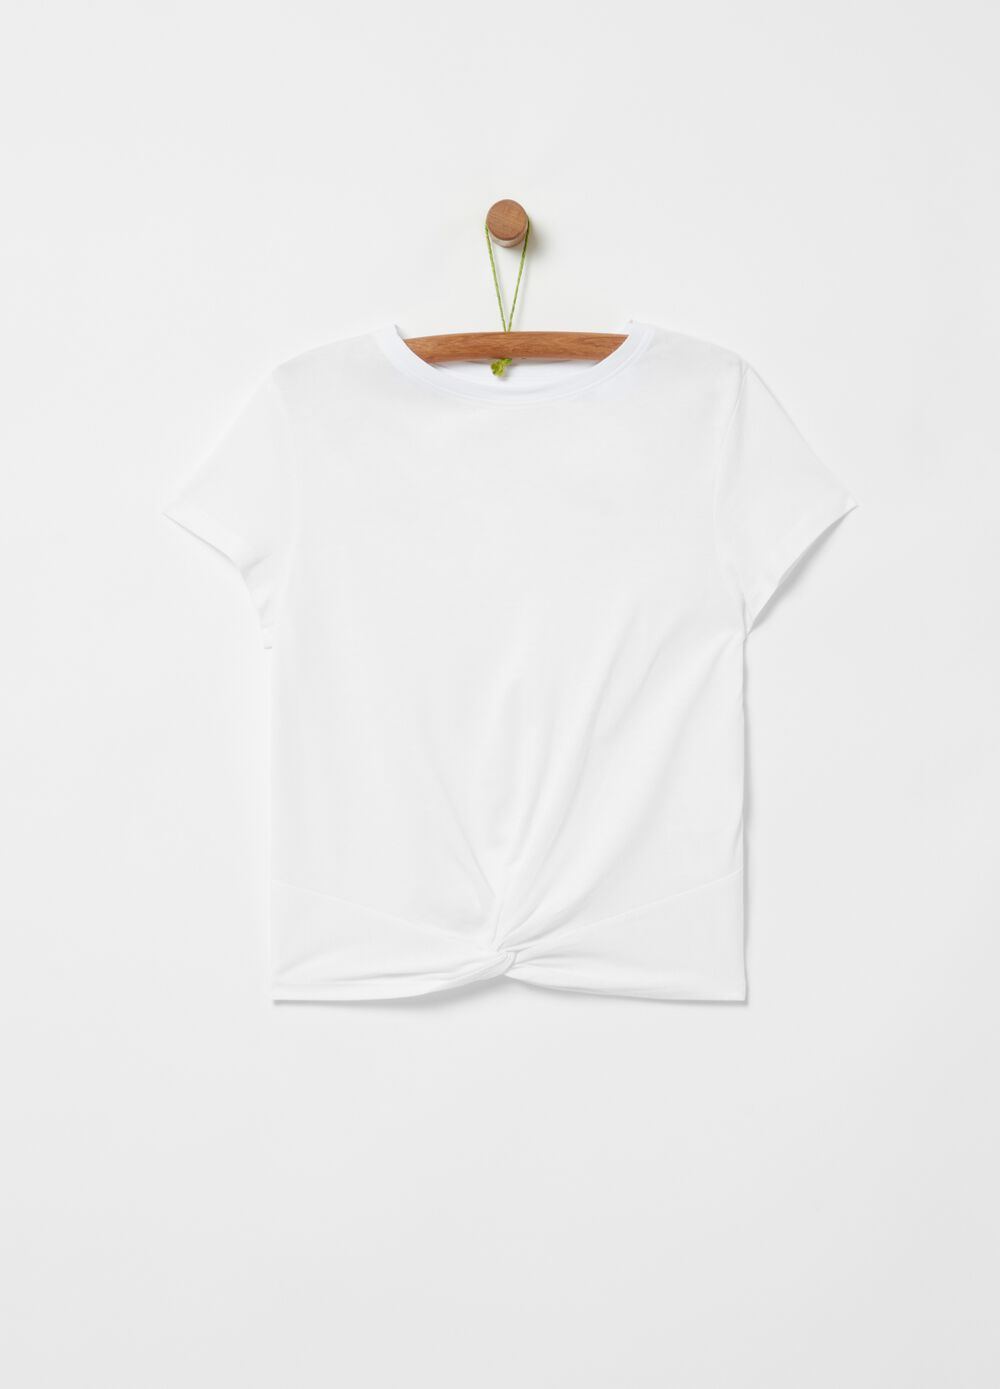 Viscose and cotton T-shirt with knot